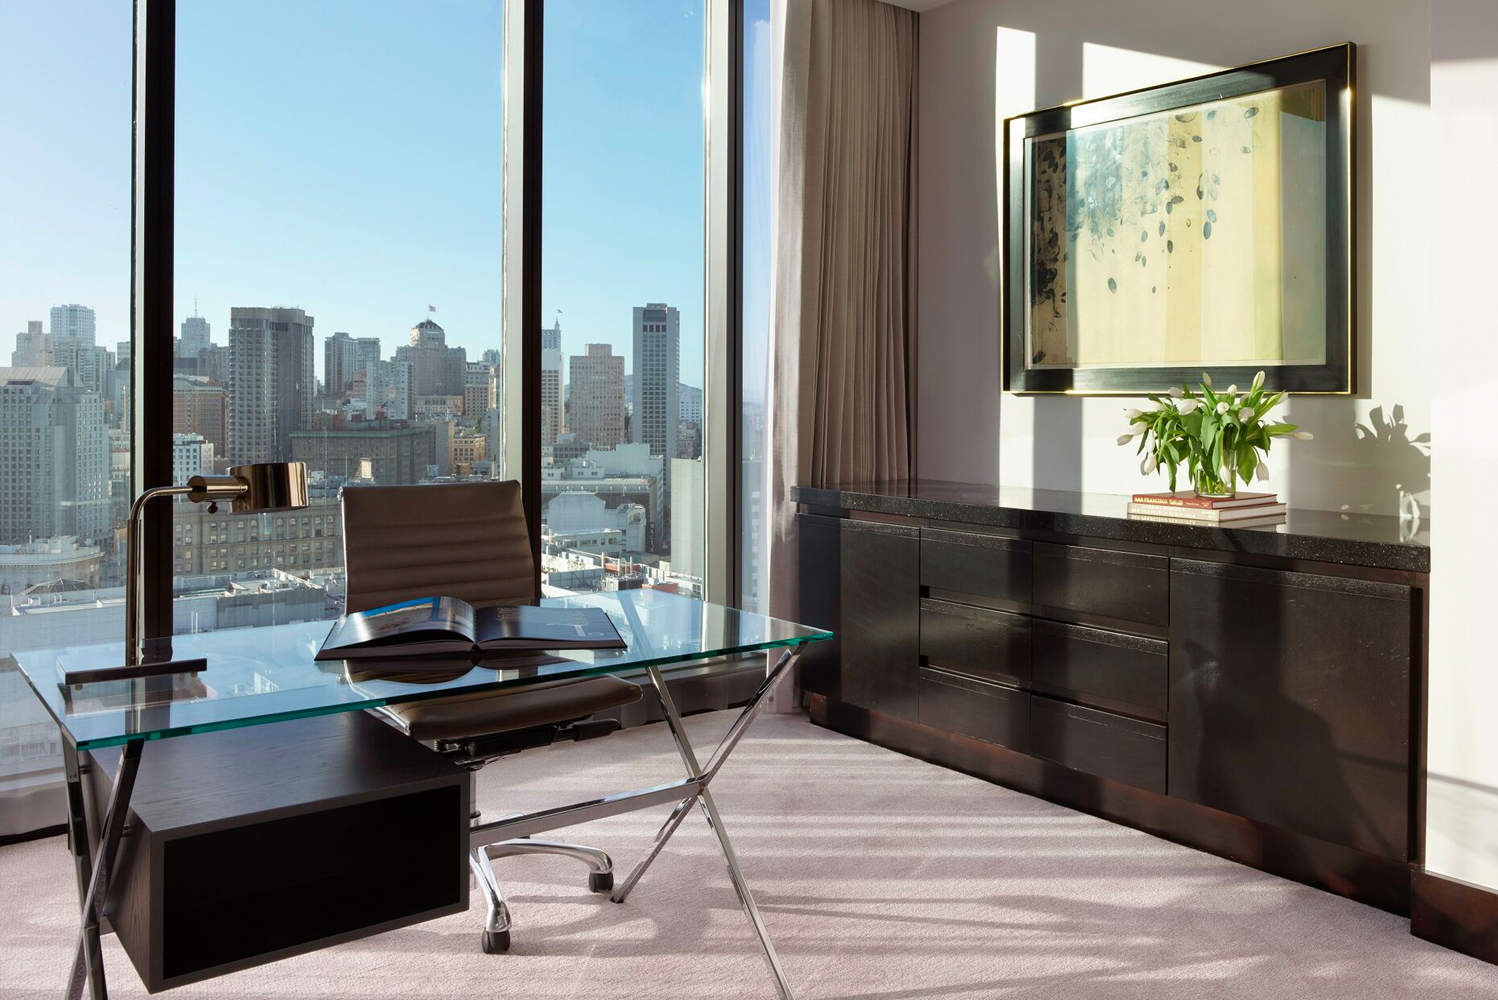 The redesign from Kiko Singh of BraytonHughes Design Studios accentuates the Presidential Suite's skyline views.